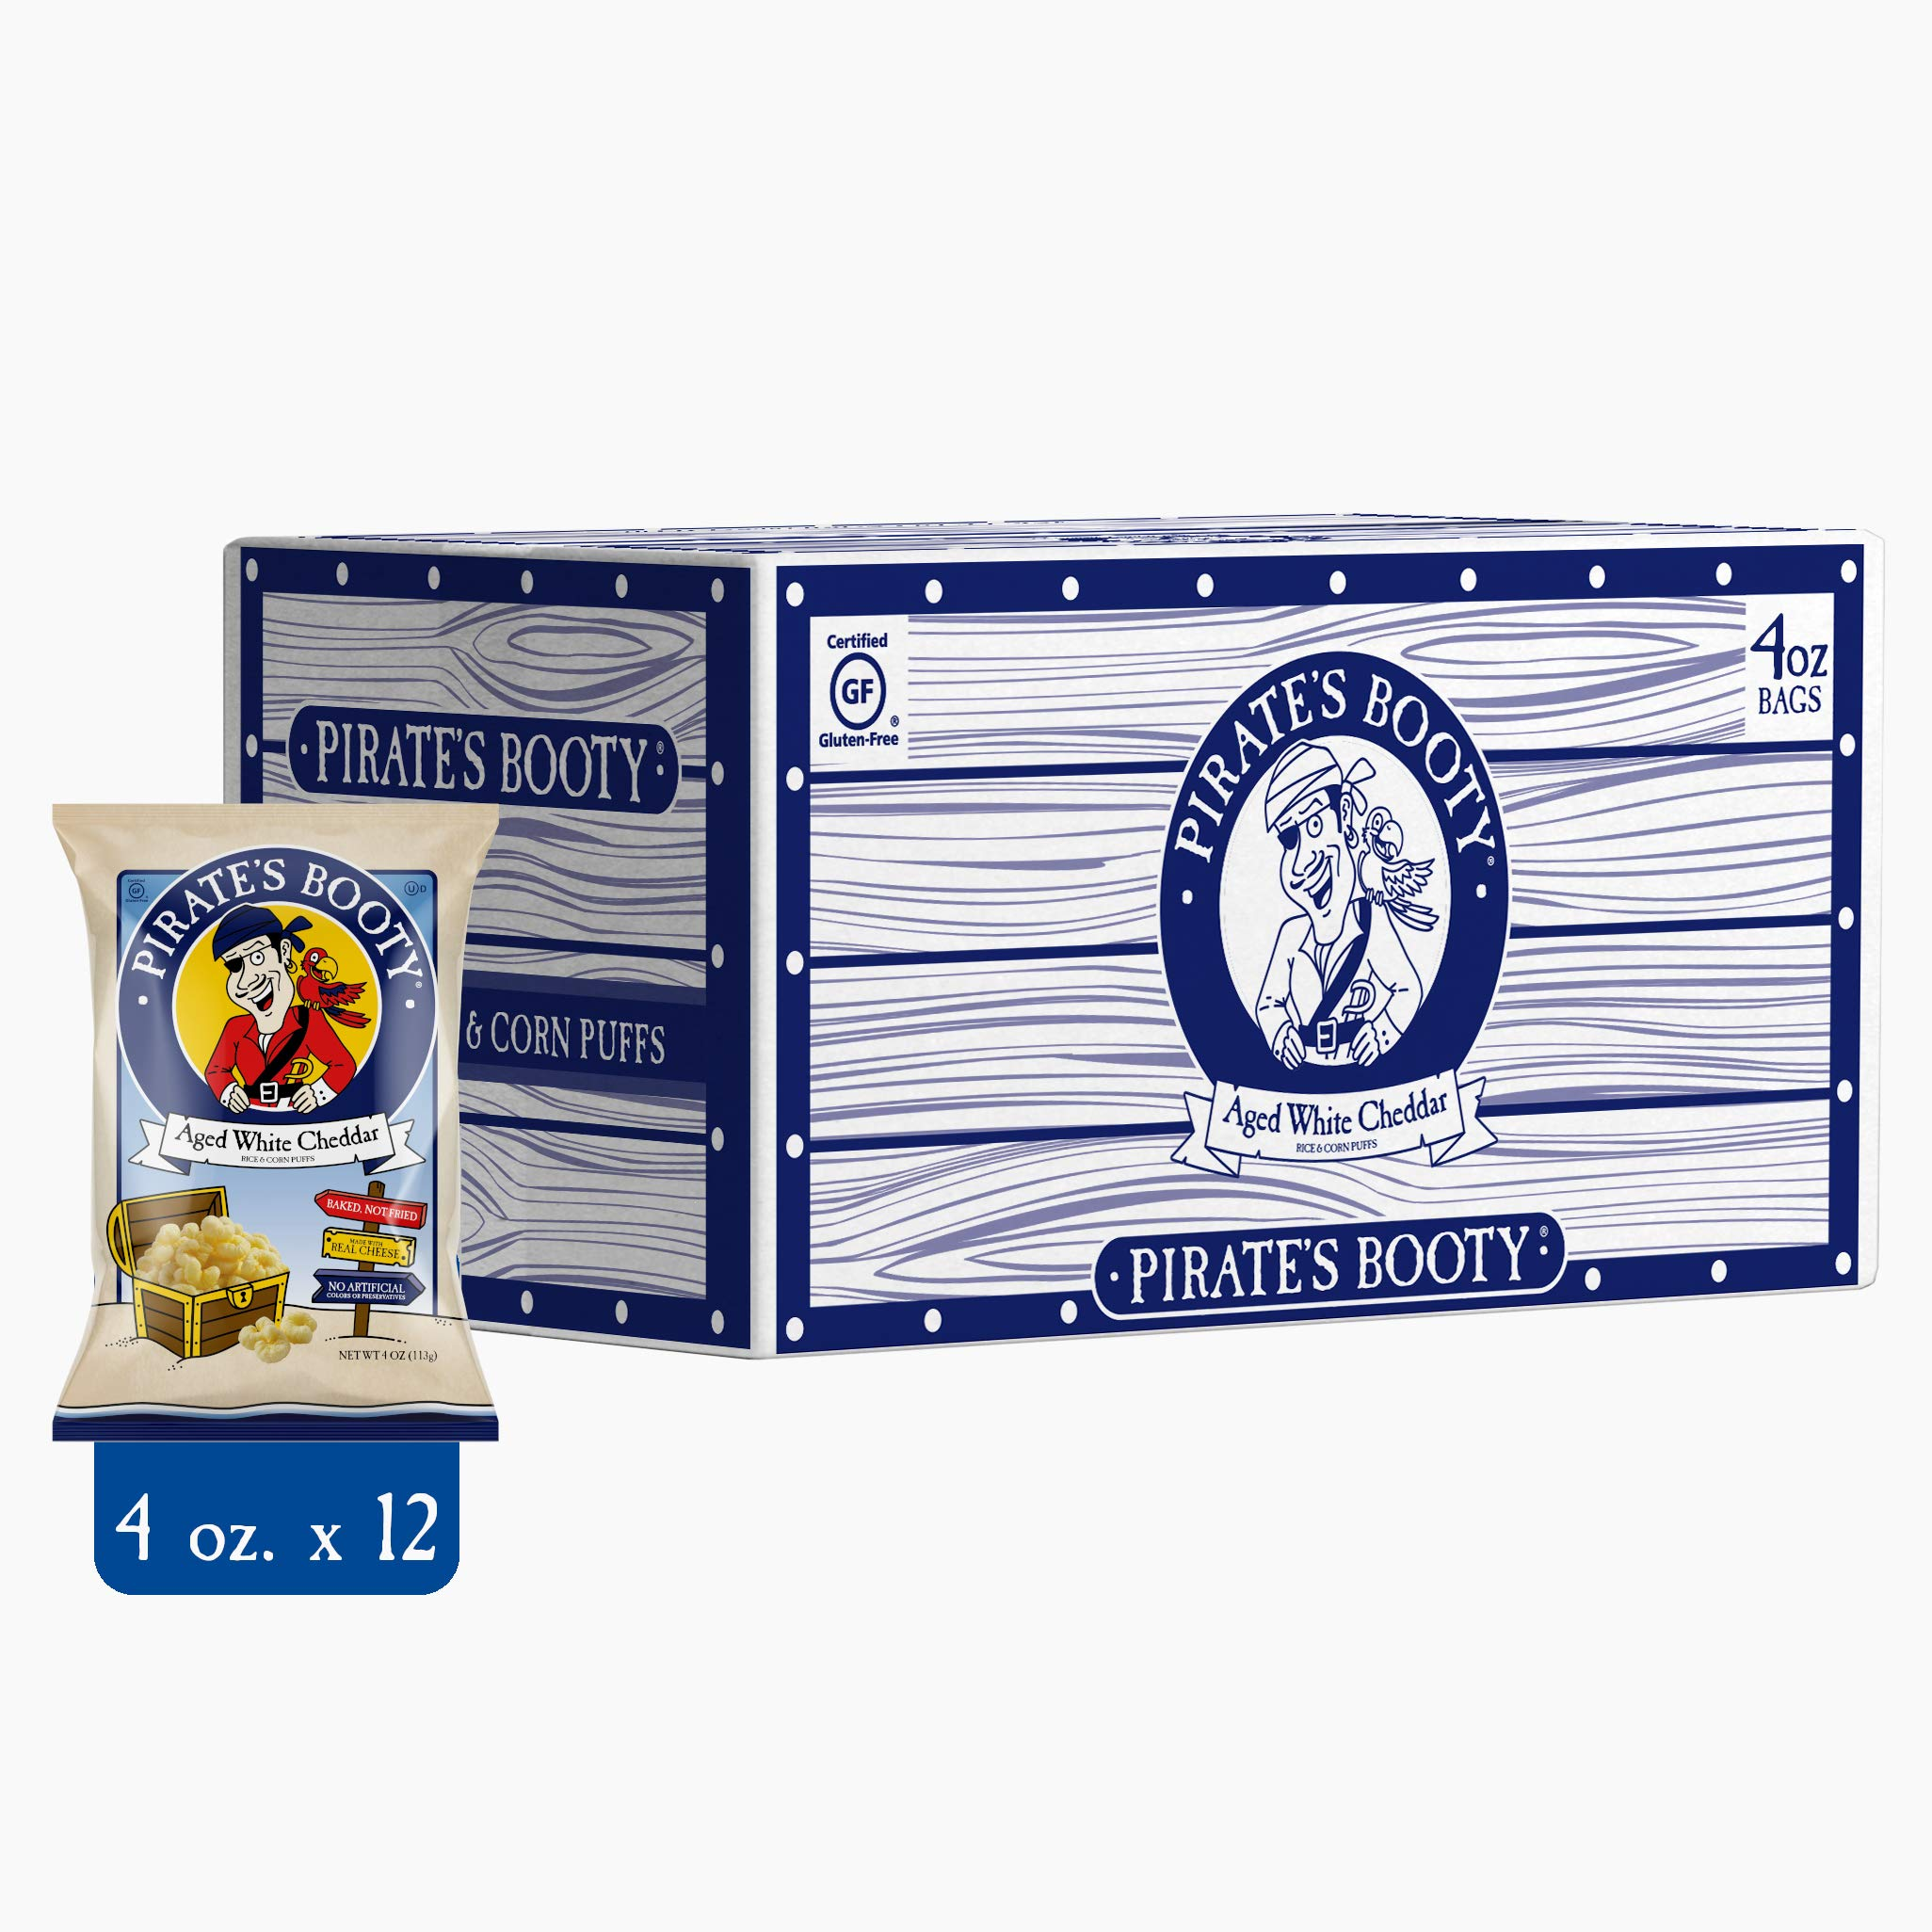 Pirate's Booty Cheese Puffs, Healthy Kids Snacks, Real Aged White Cheddar, 4oz Grocery Sized Bags (Pack of 12)